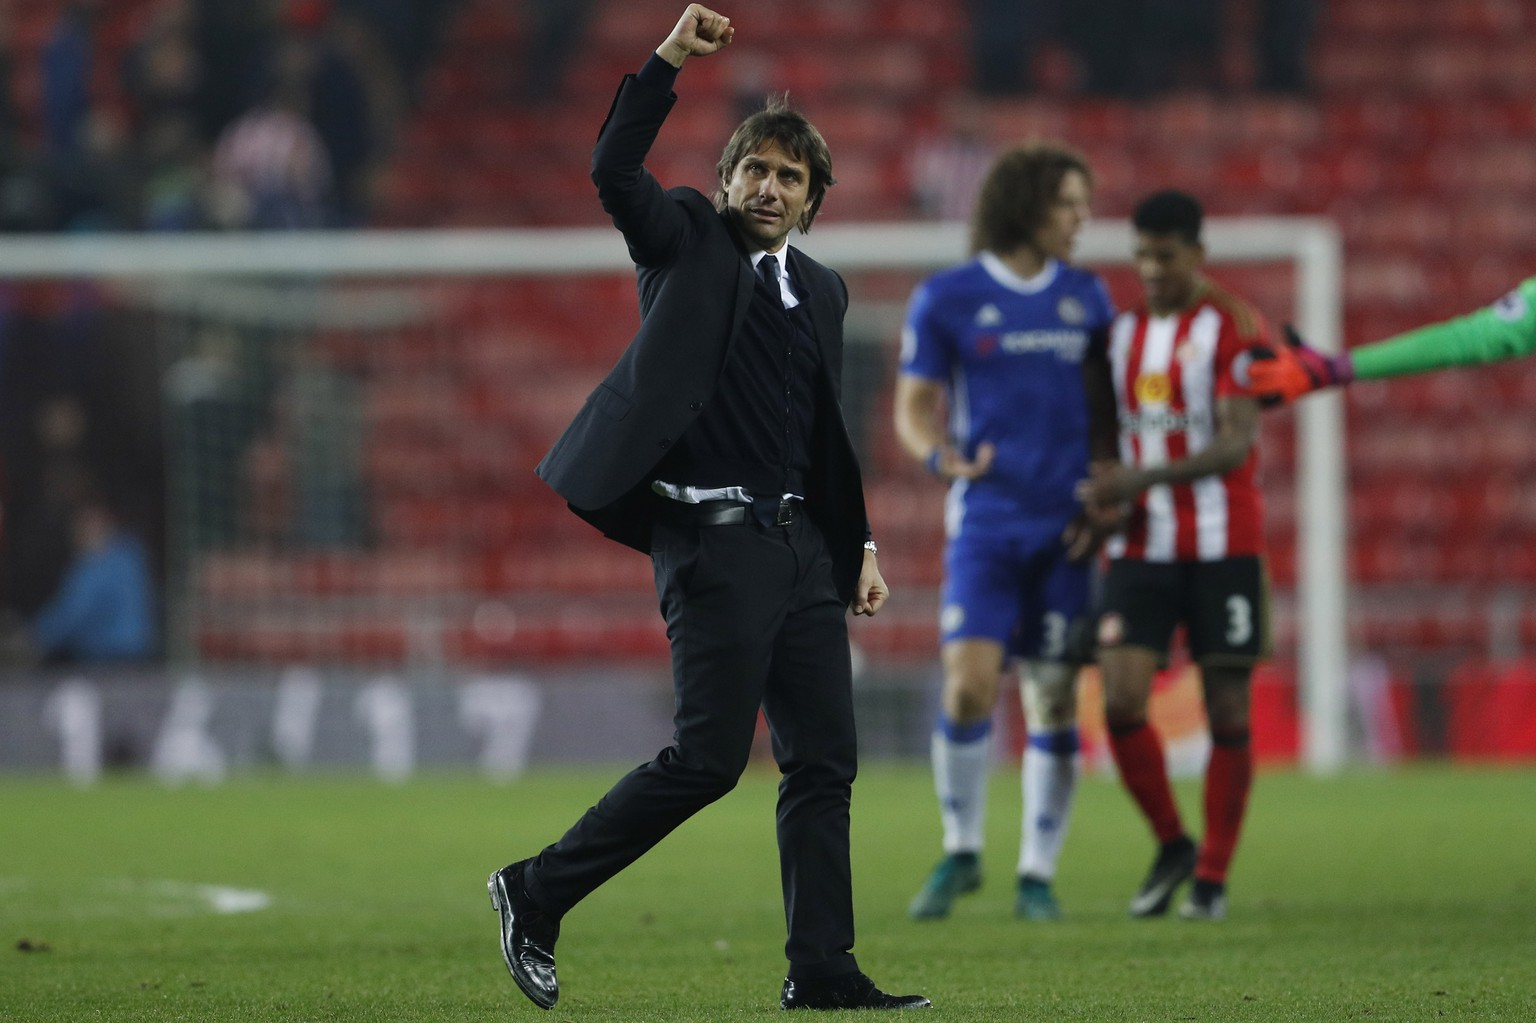 Britain Football Soccer - Sunderland v Chelsea - Premier League - The Stadium of Light - 14/12/16 Chelsea manager Antonio Conte celebrates after the game Action Images via Reuters / Lee Smith Livepic EDITORIAL USE ONLY. No use with unauthorized audio, video, data, fixture lists, club/league logos or